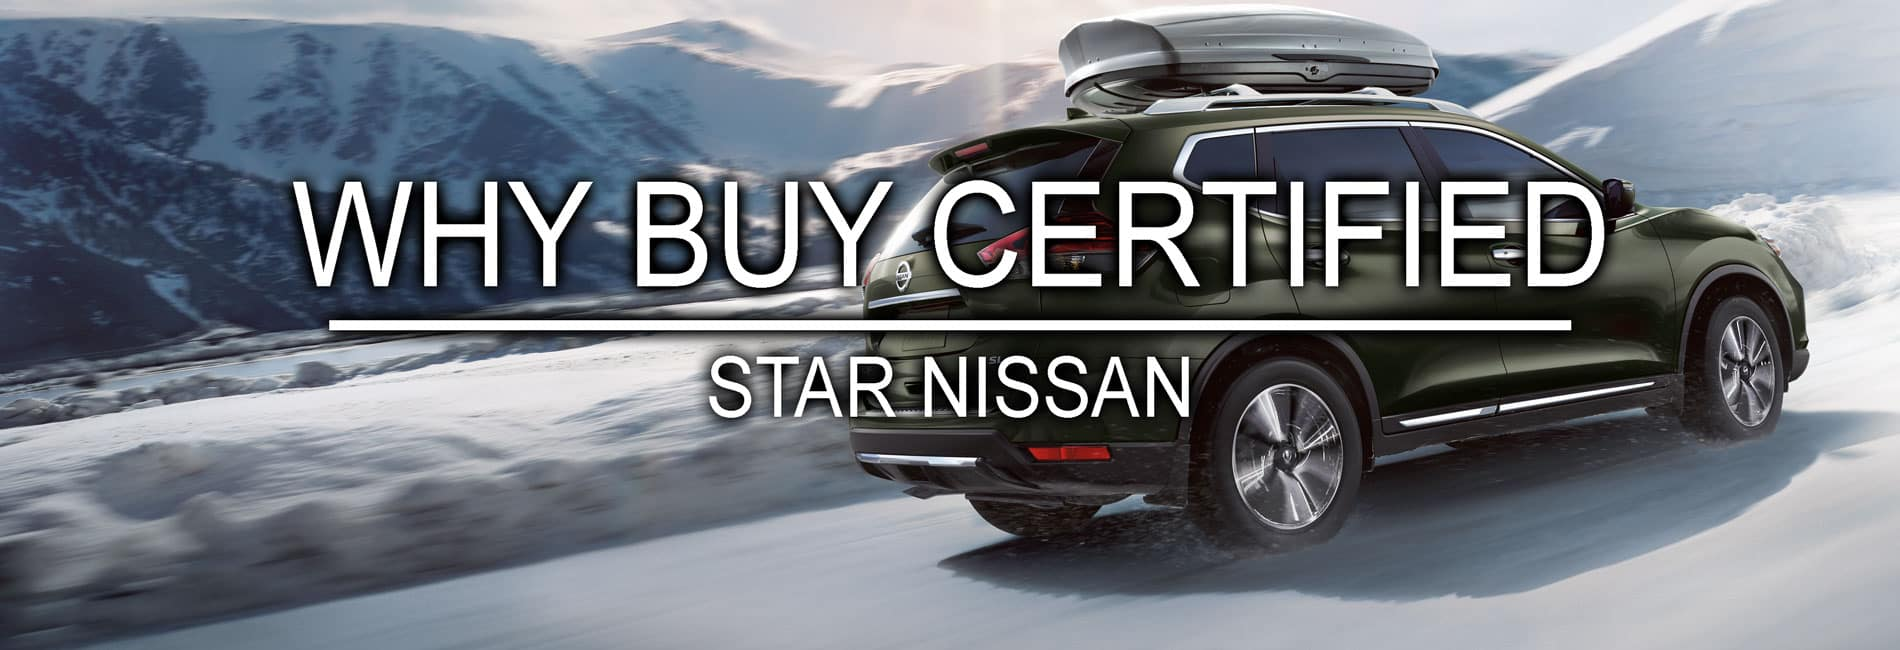 Why Buy Certified Pre-Owned from Star Nissan